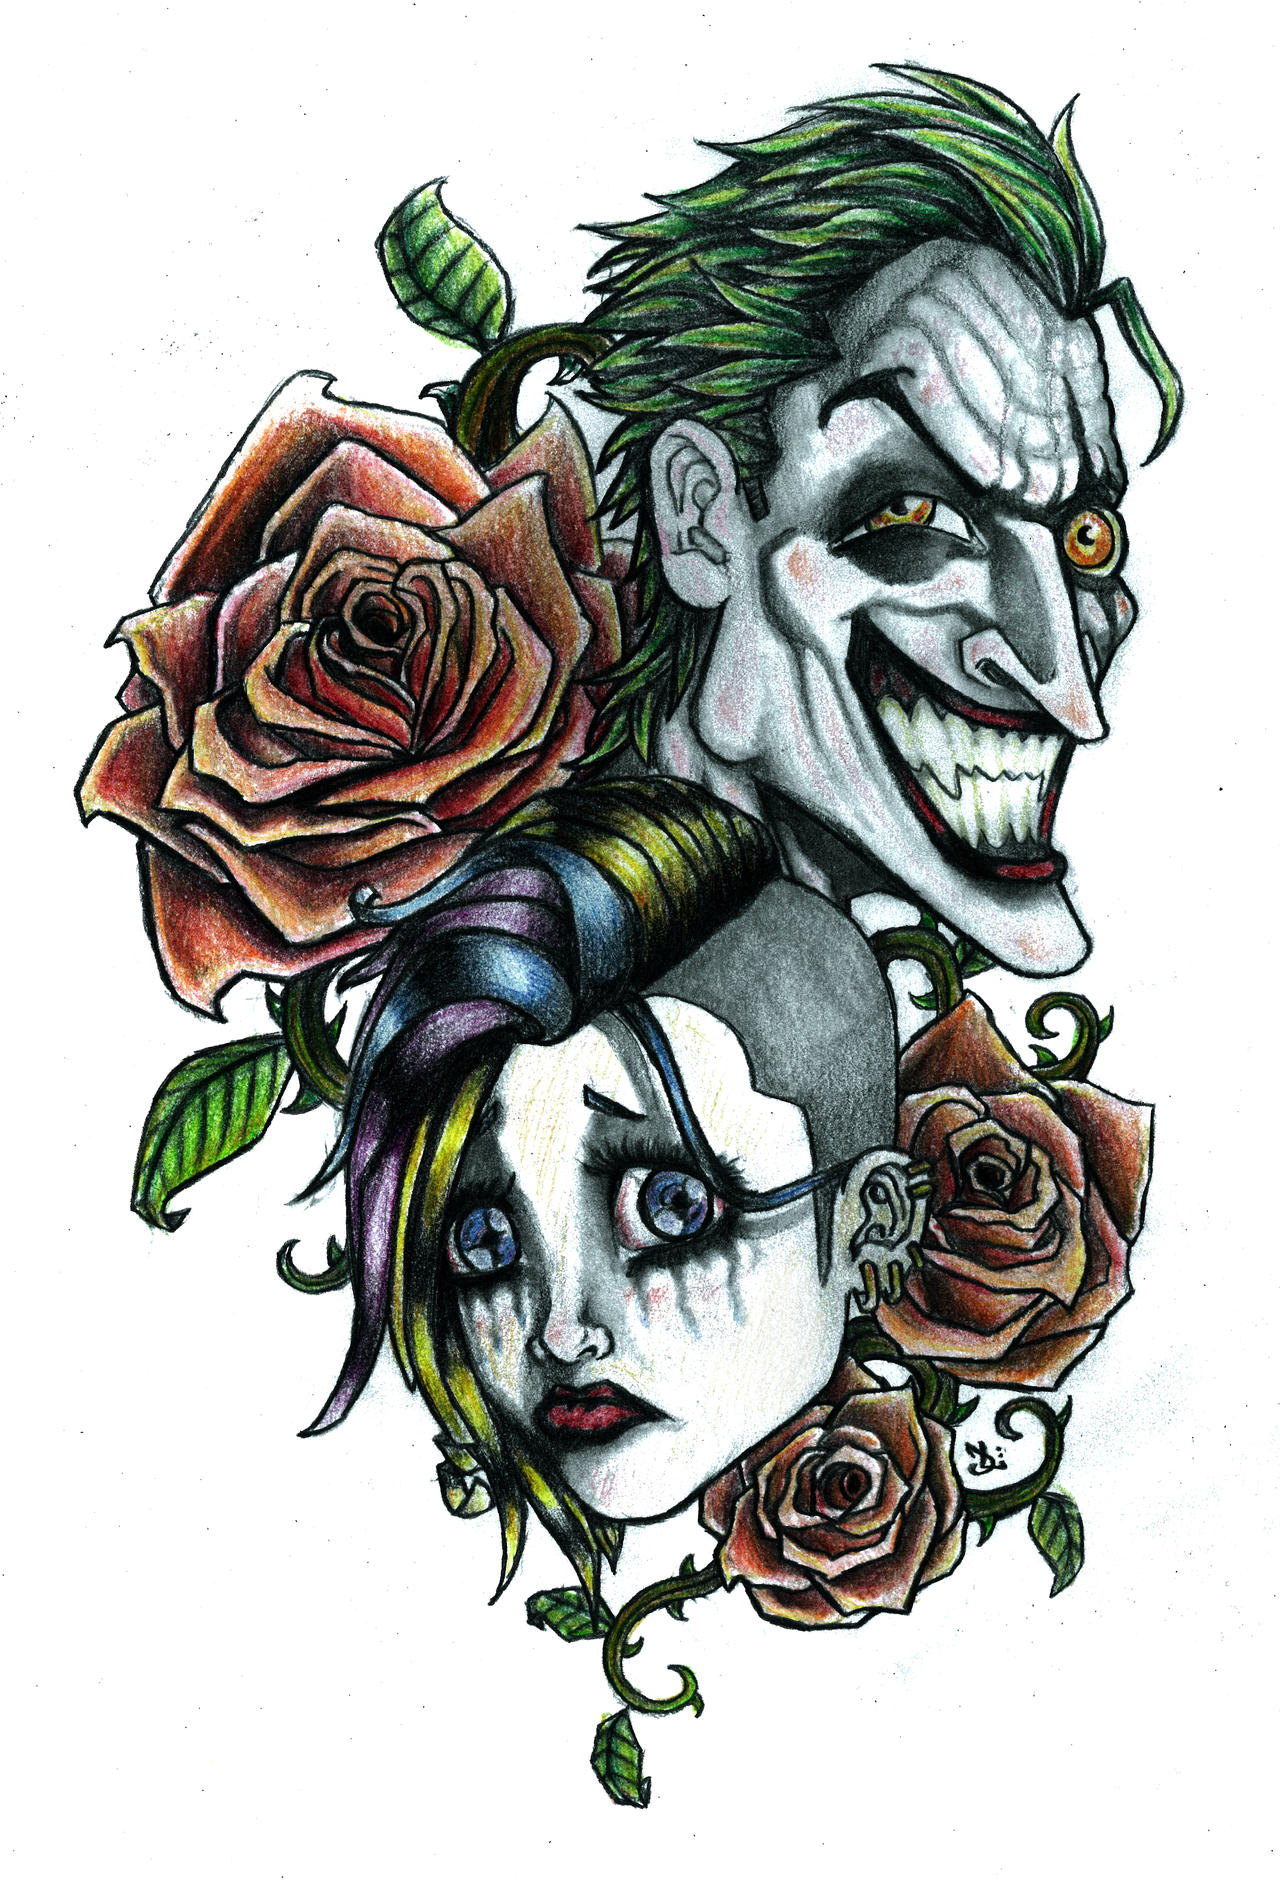 'Laugh Now Cry Later' by Bald-Imaginations on DeviantArt